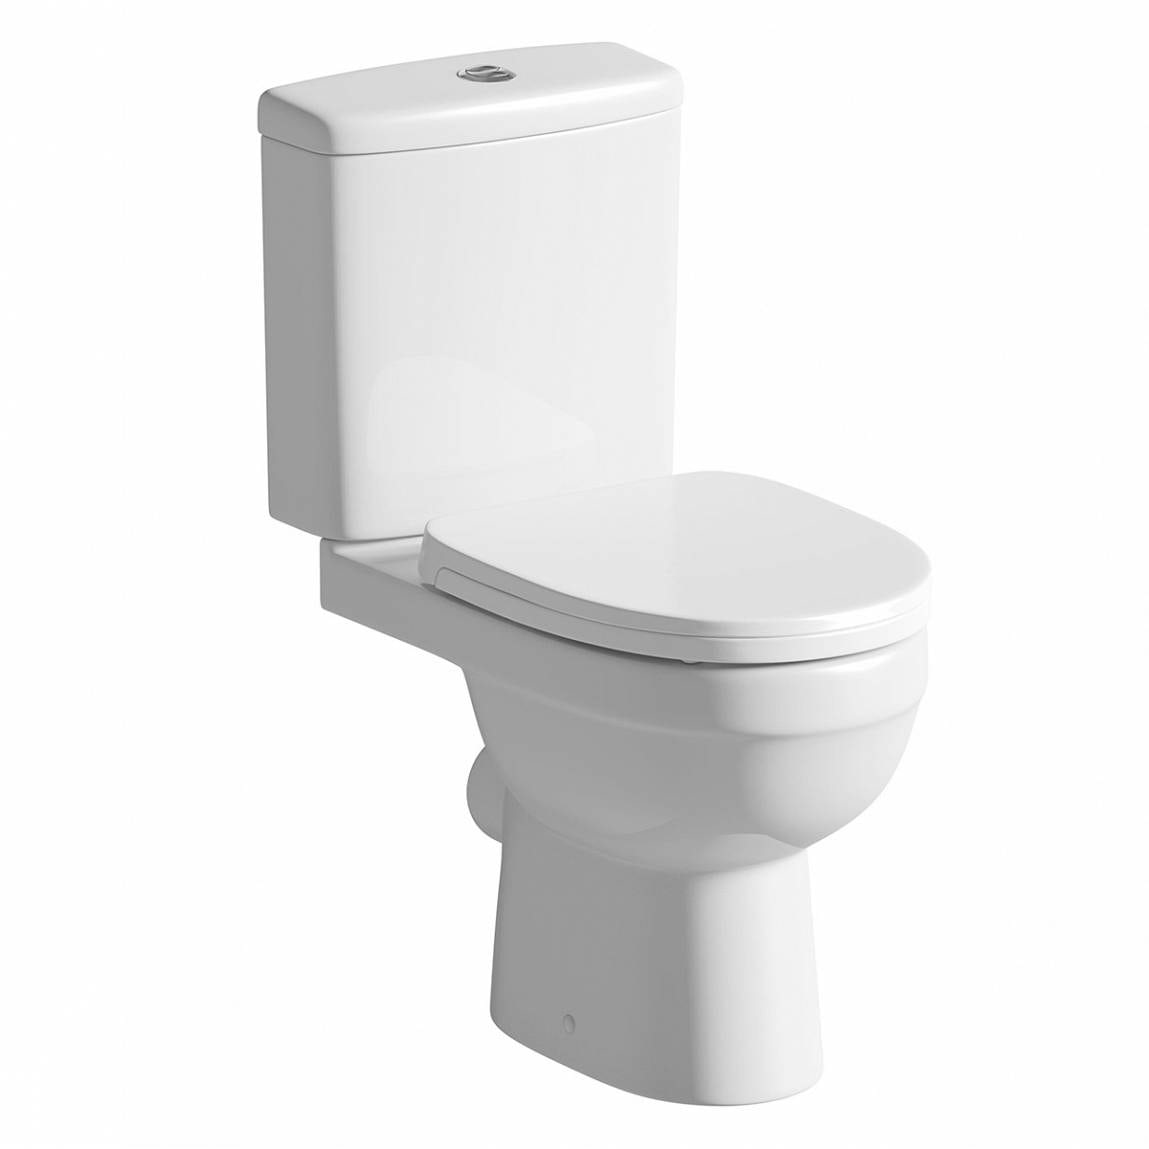 Orchard Eden close coupled toilet with soft close toilet seat with pan connector